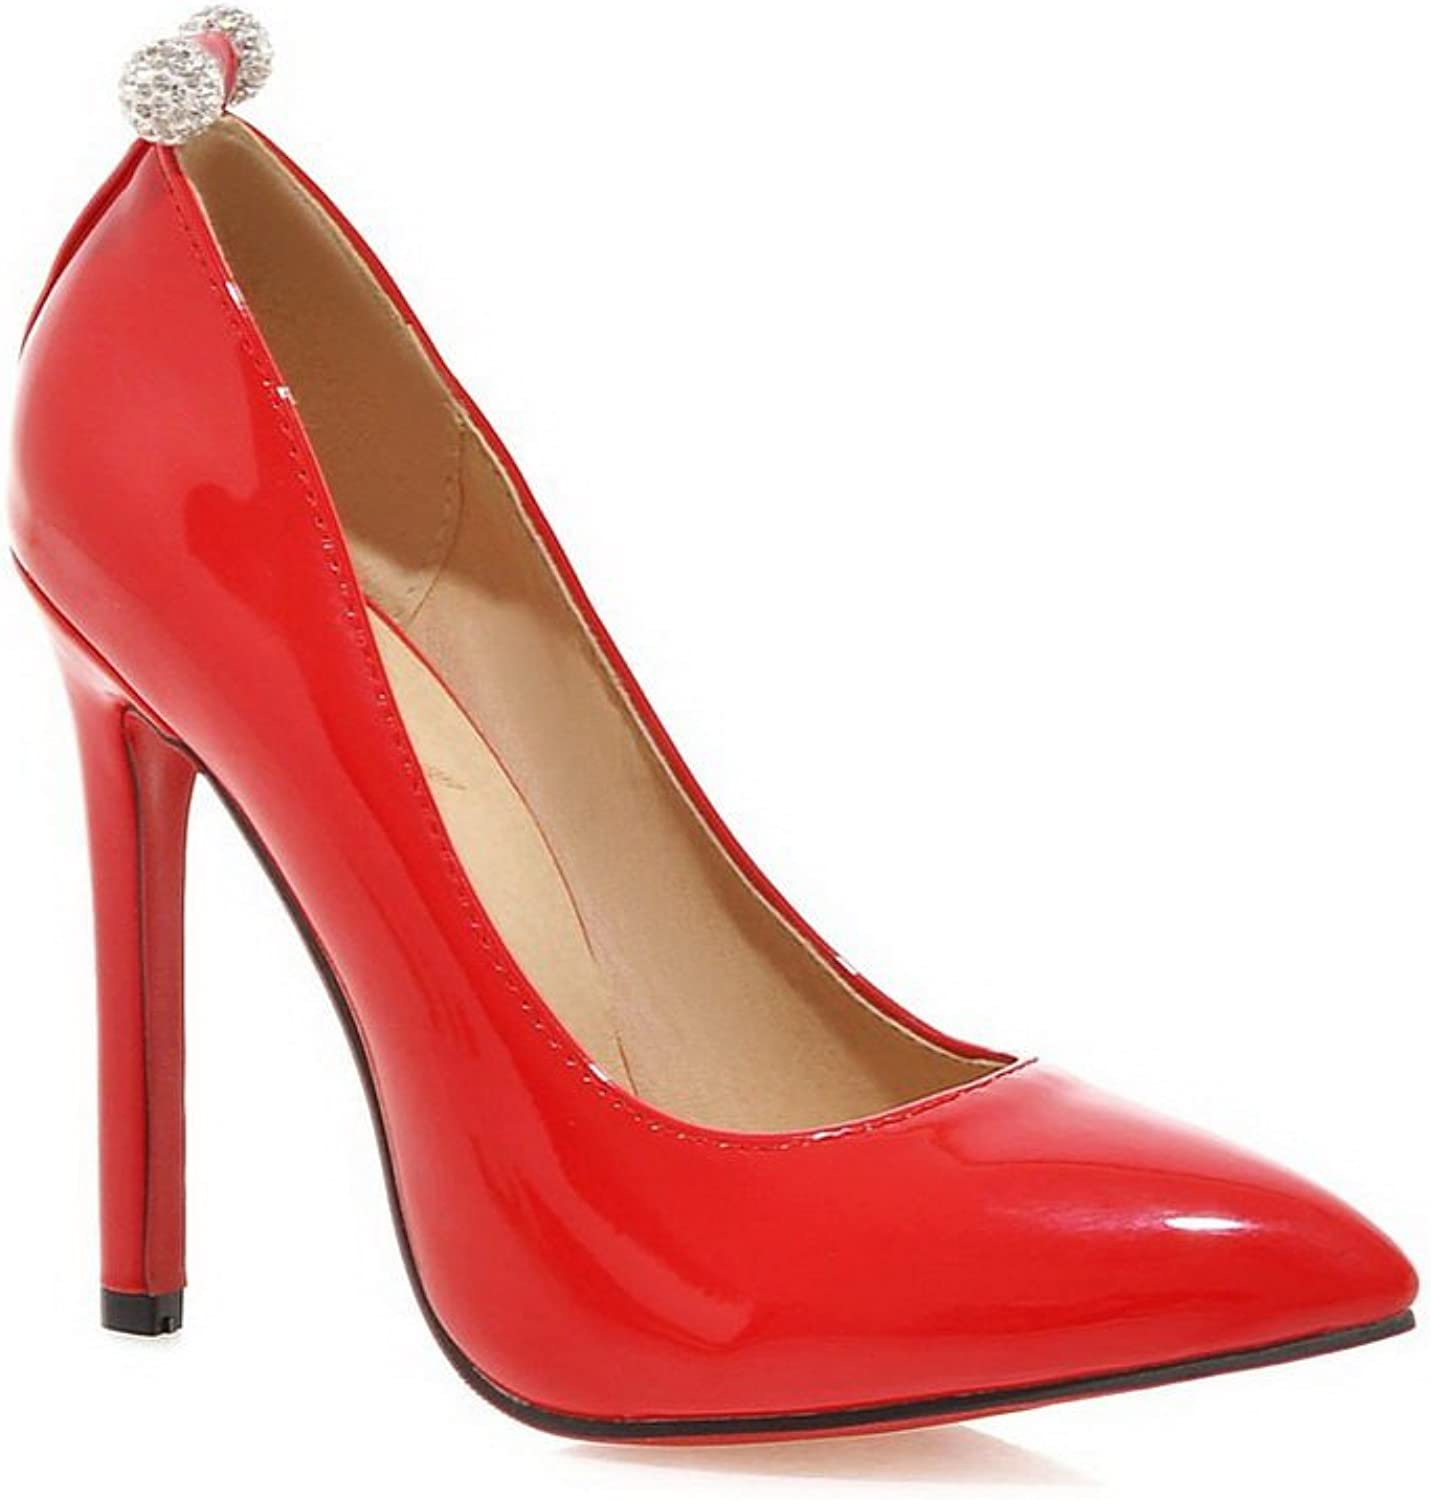 1TO9 Womens Glass Diamond Low-Cut Uppers Pull-On Patent Leather Pumps-shoes